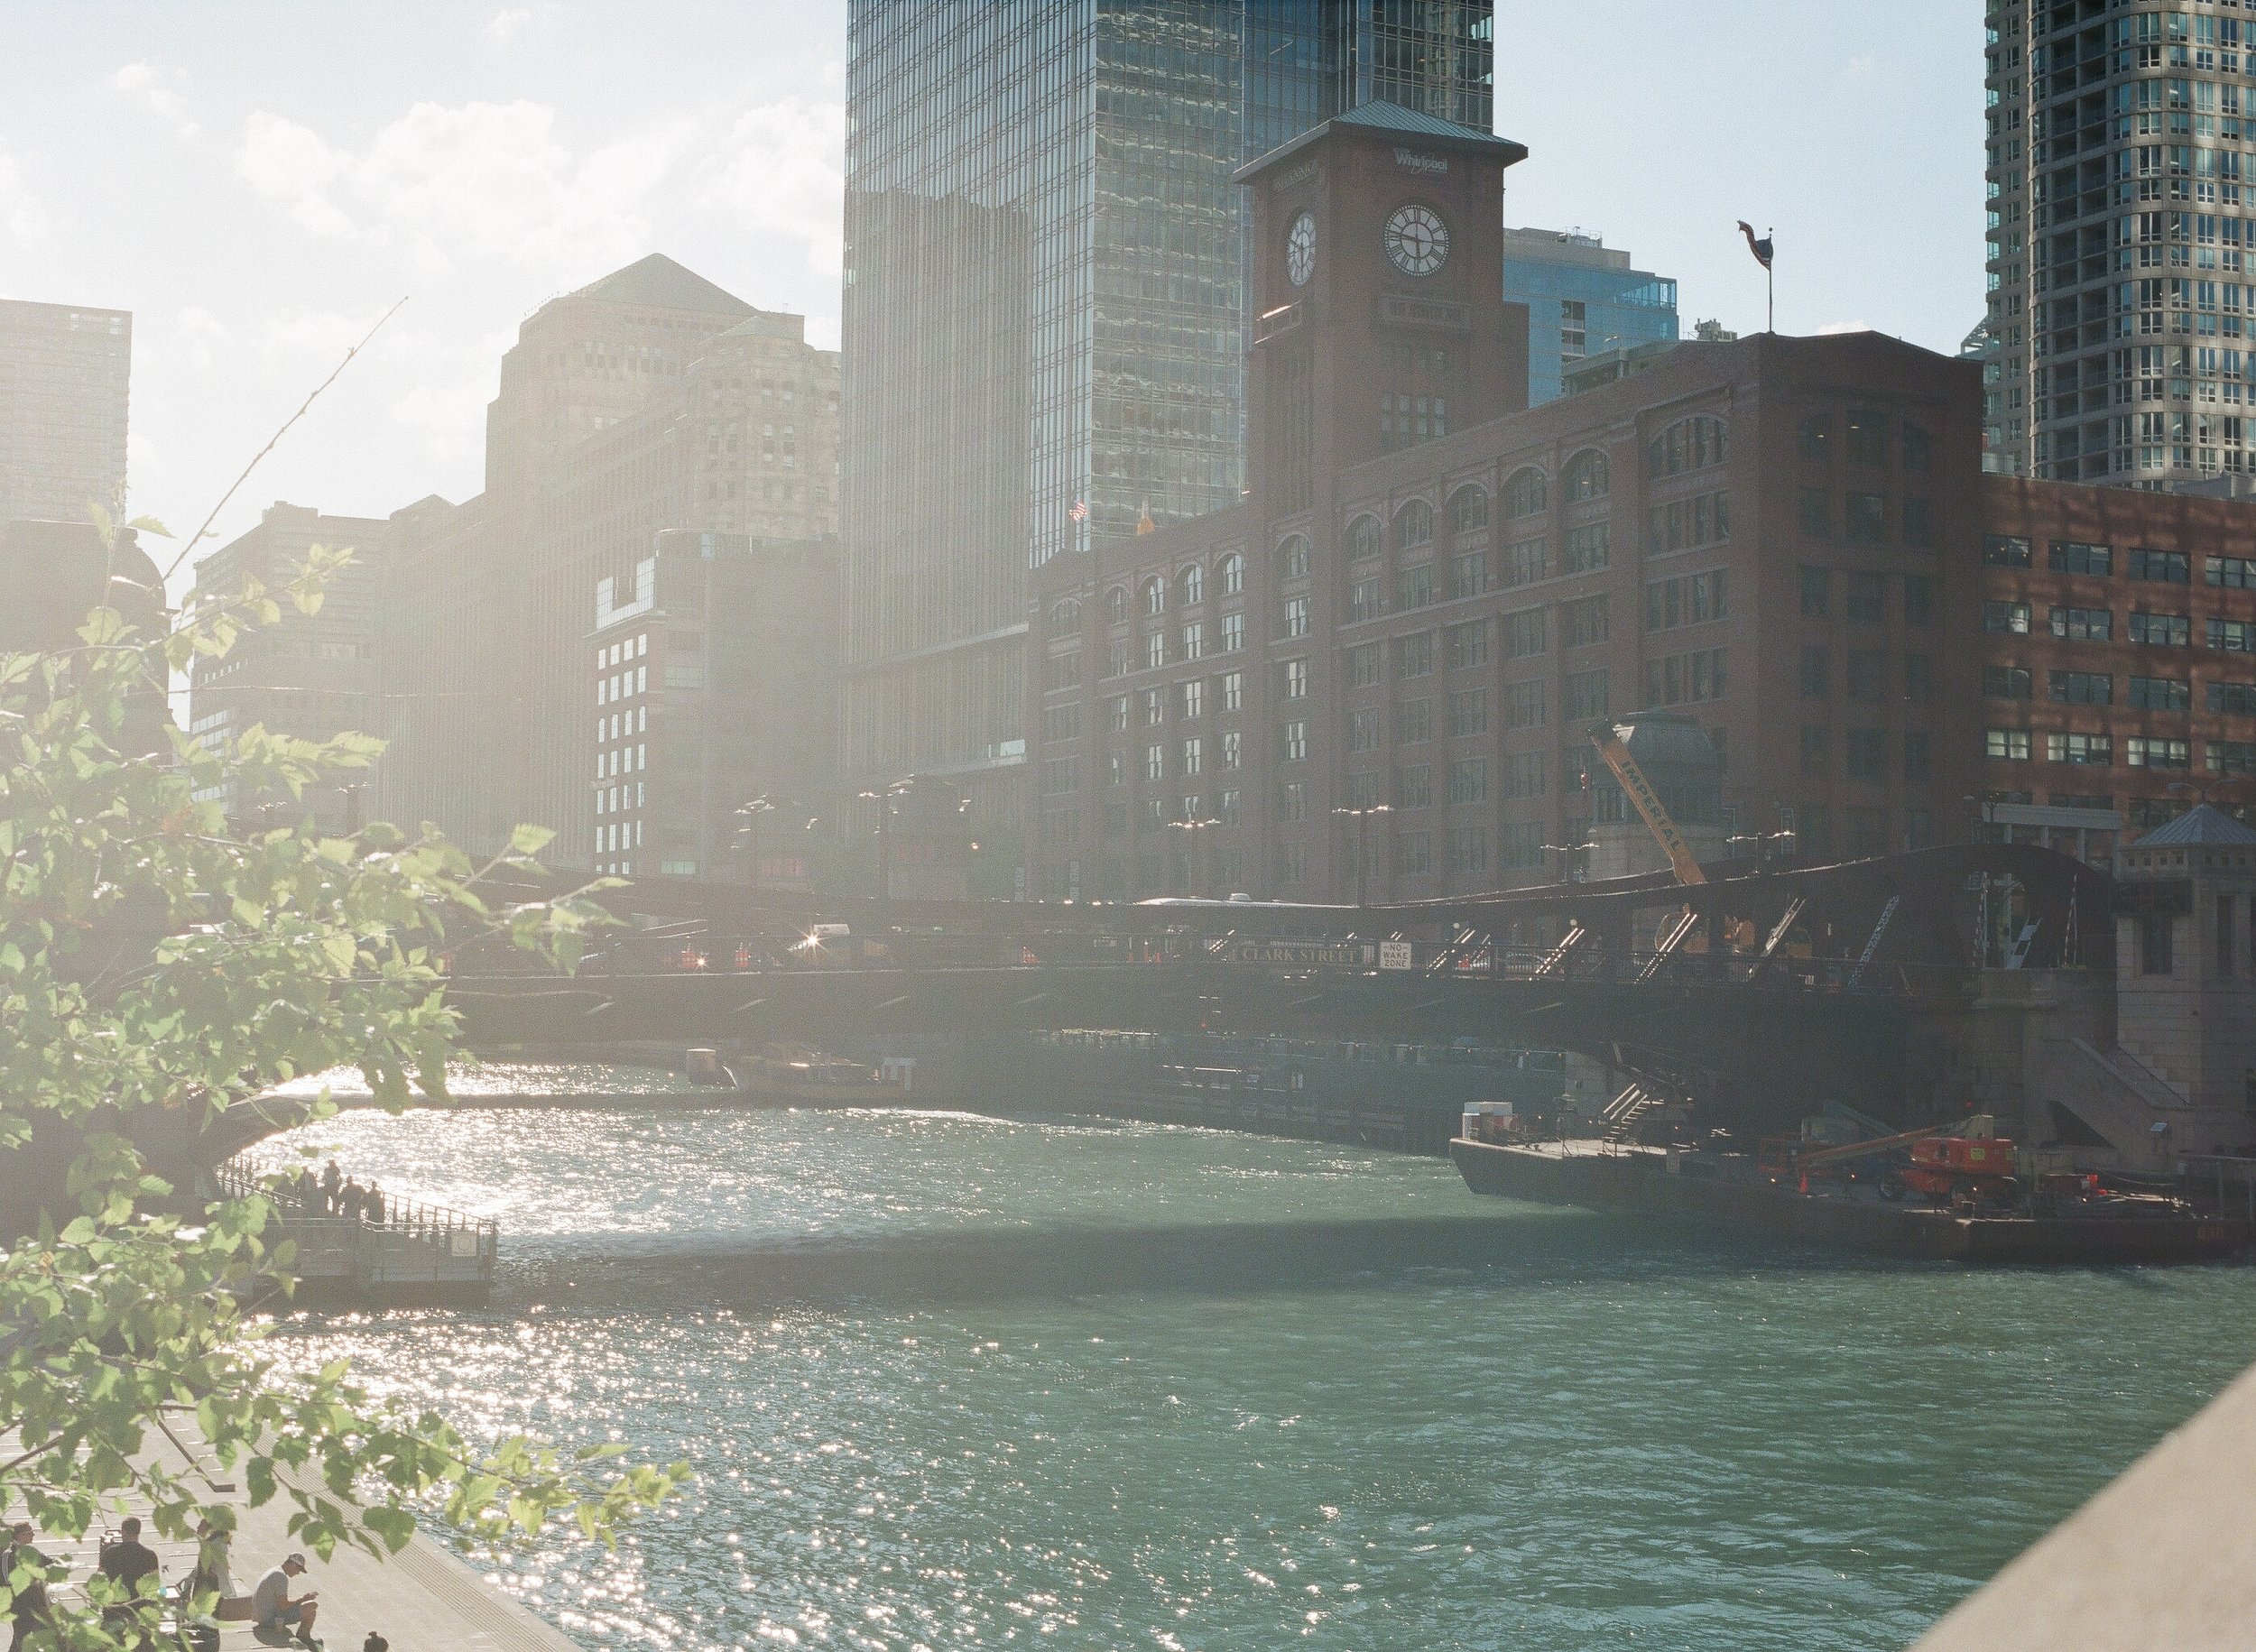 Chicago. River